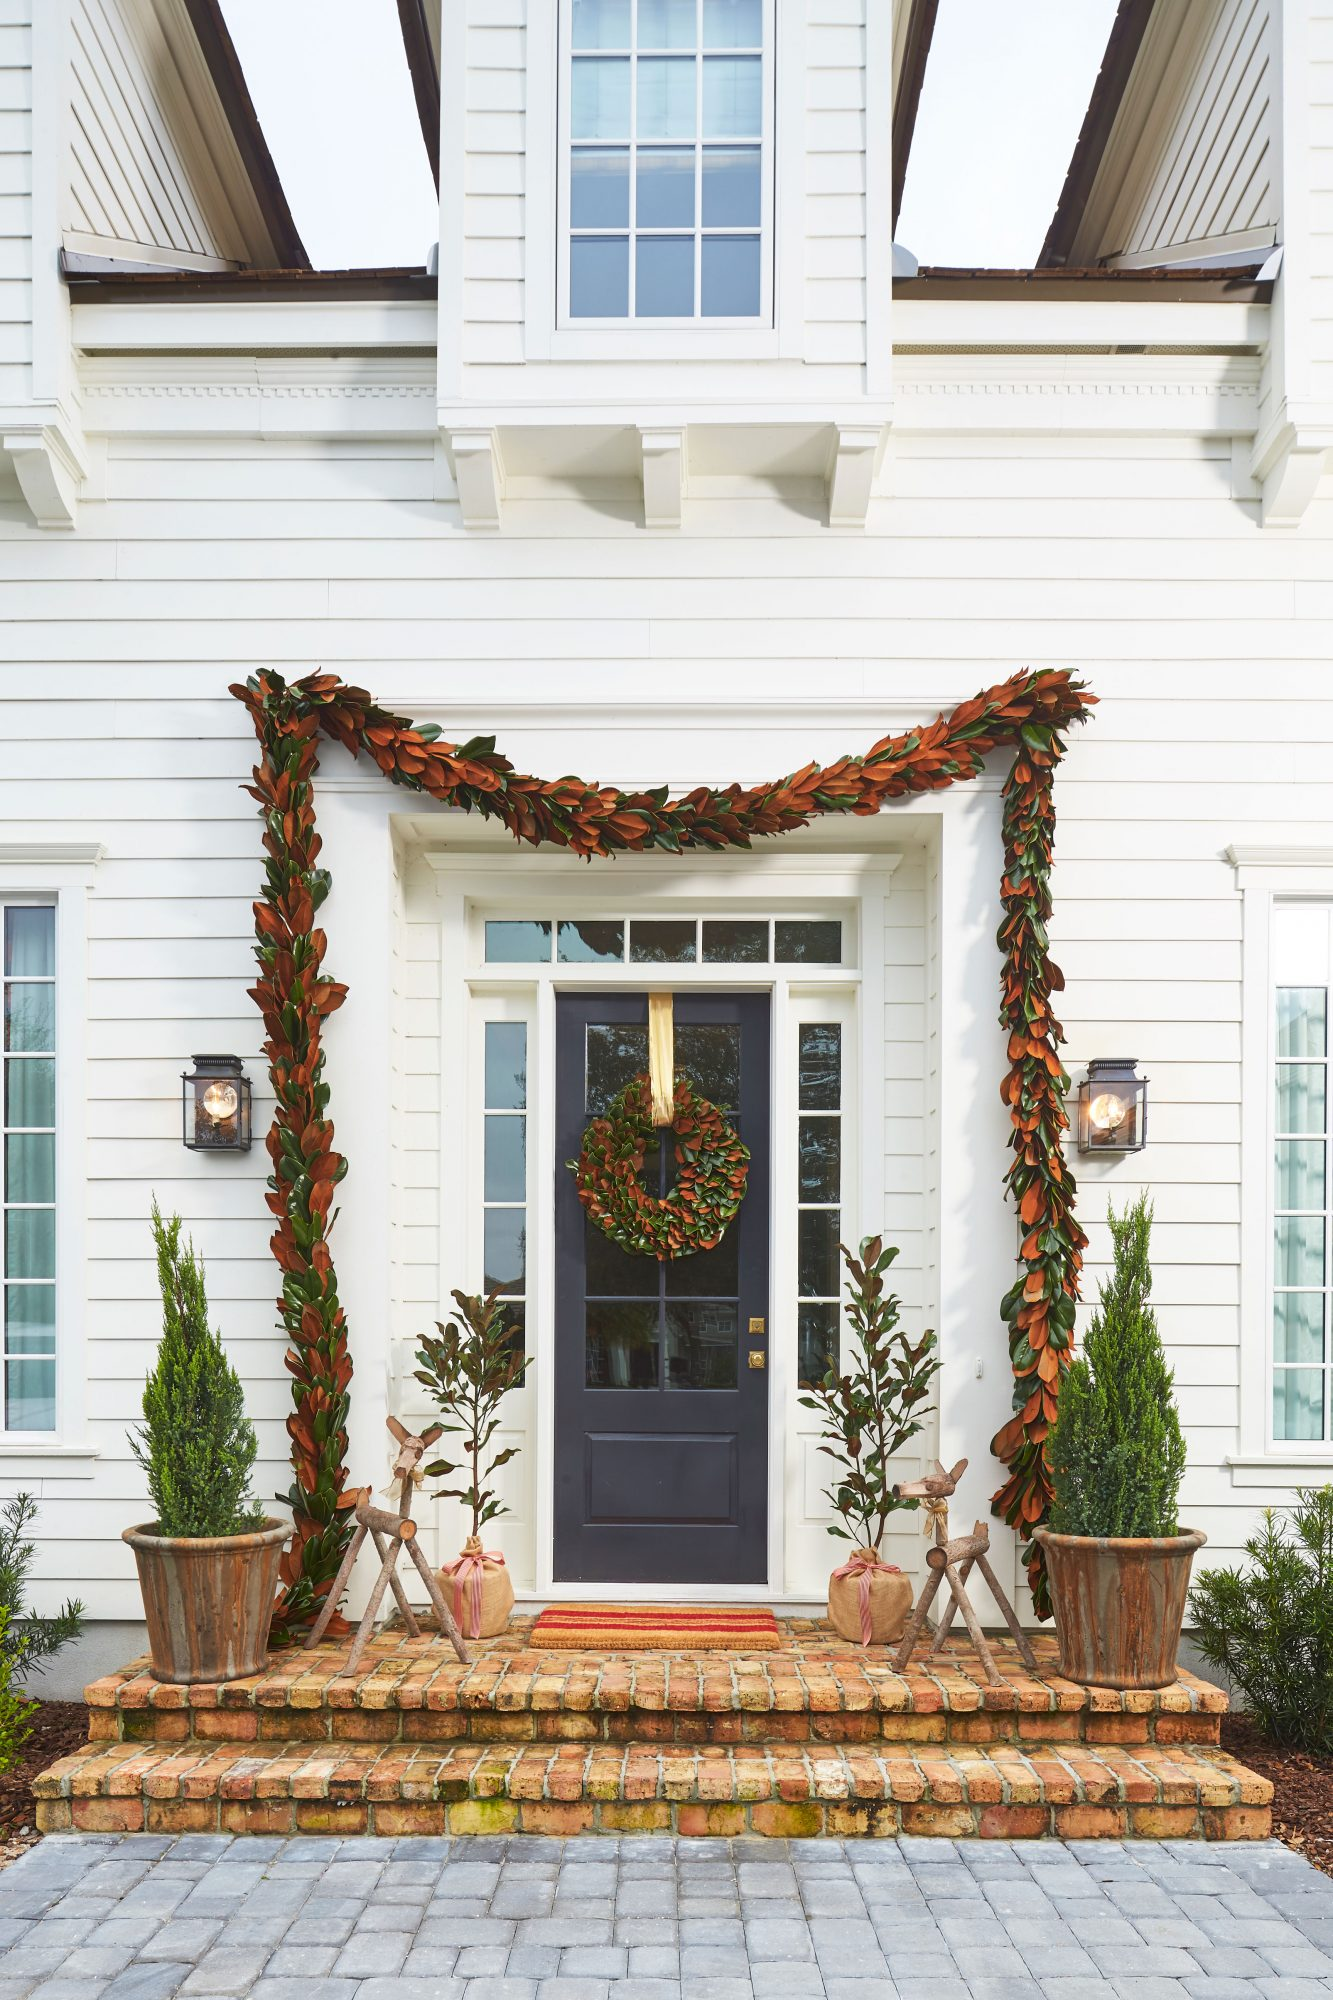 Andrew Howard's Home Decorated for Christmas Front Exterior Door with Magnolia Leave Garland and Wreath